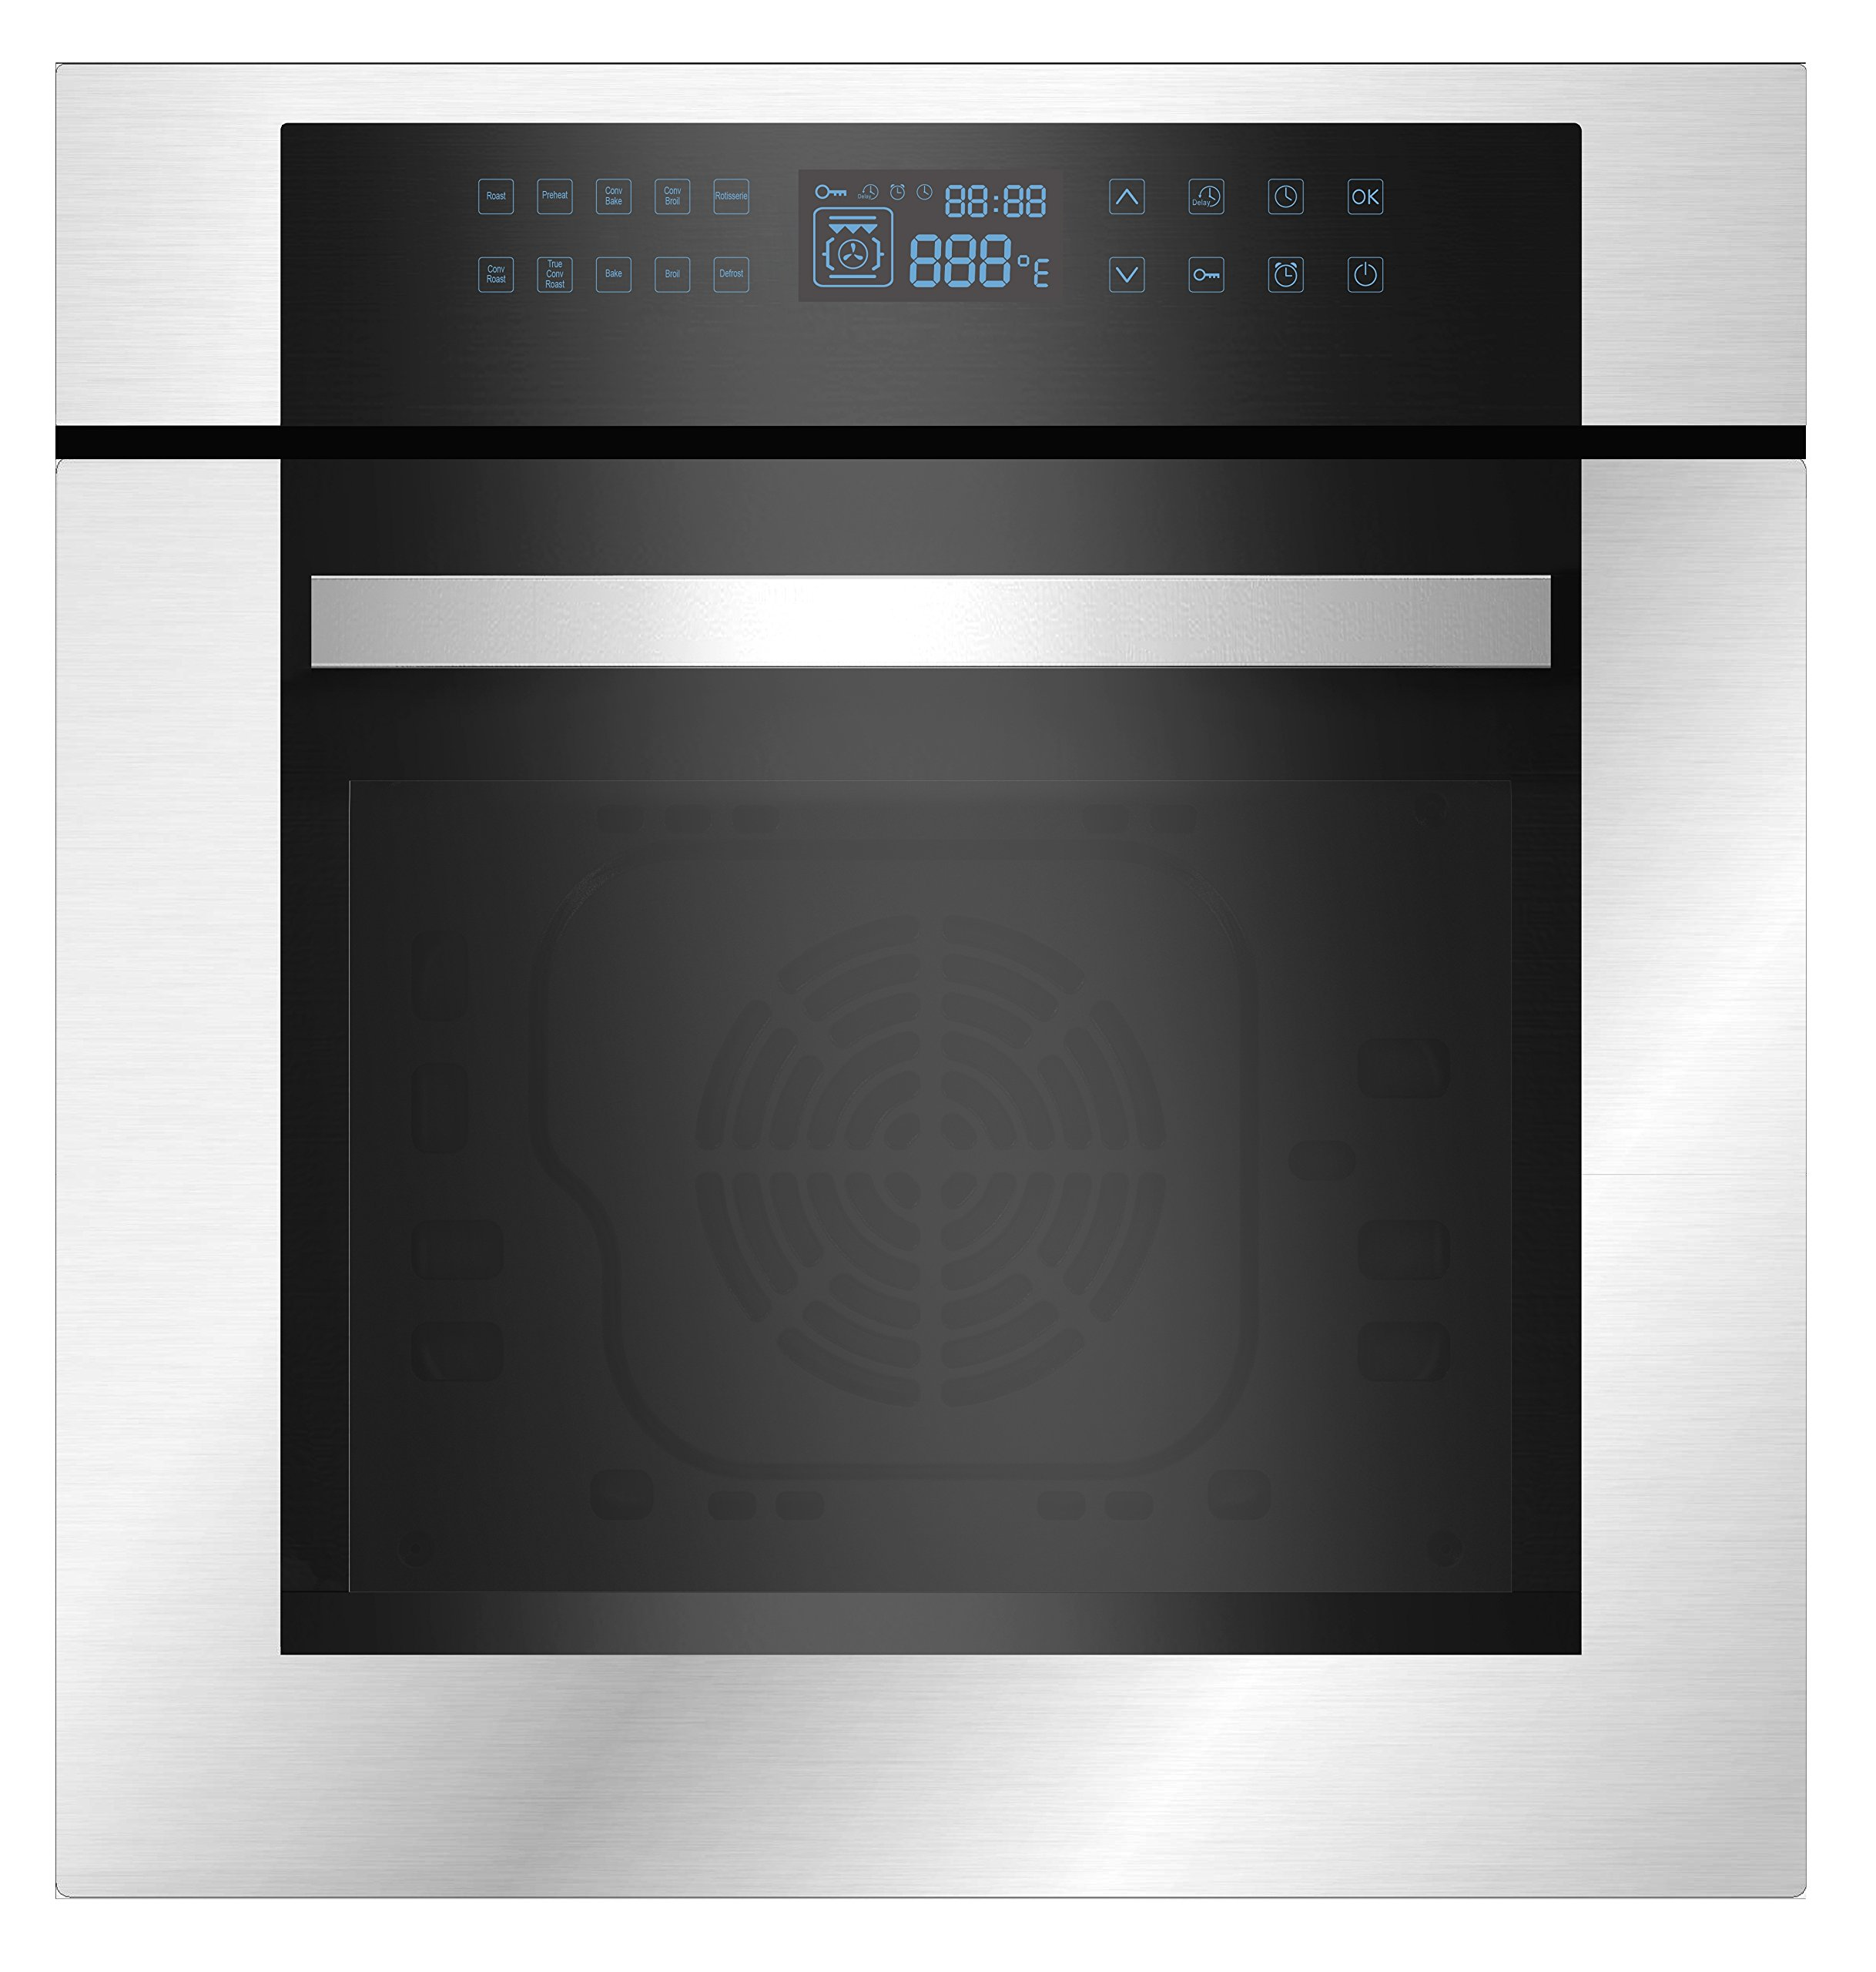 Empava 24'' Stainless Steel LED Control Panel Electric Built-in Single Wall Oven EMPV-24WOC02 by Empava